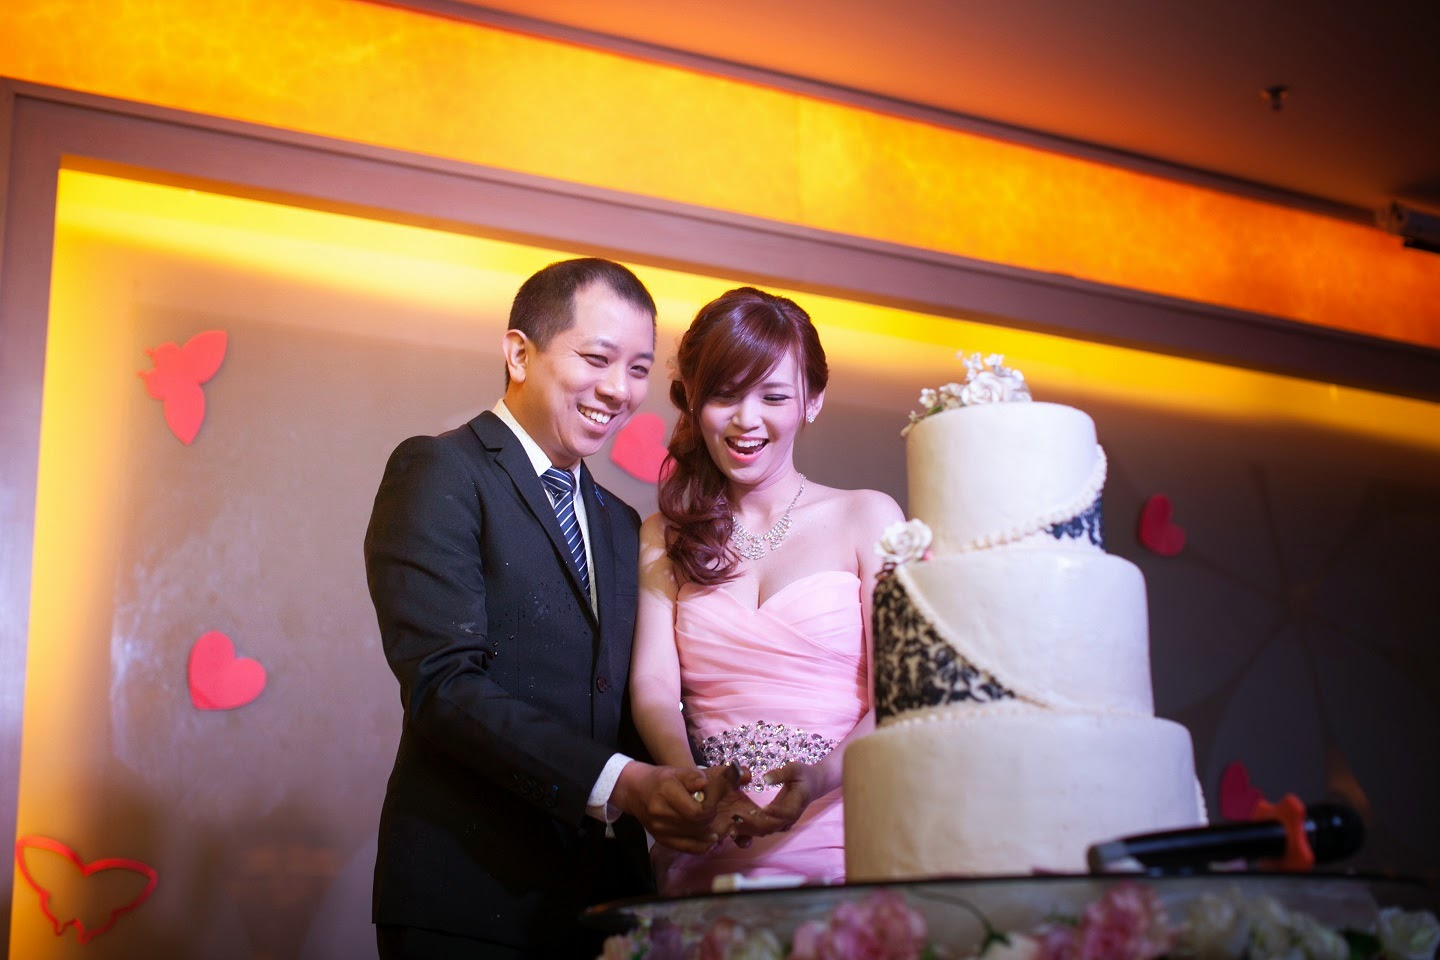 List of Wedding Venue and Reviews - Wedding Research Malaysia